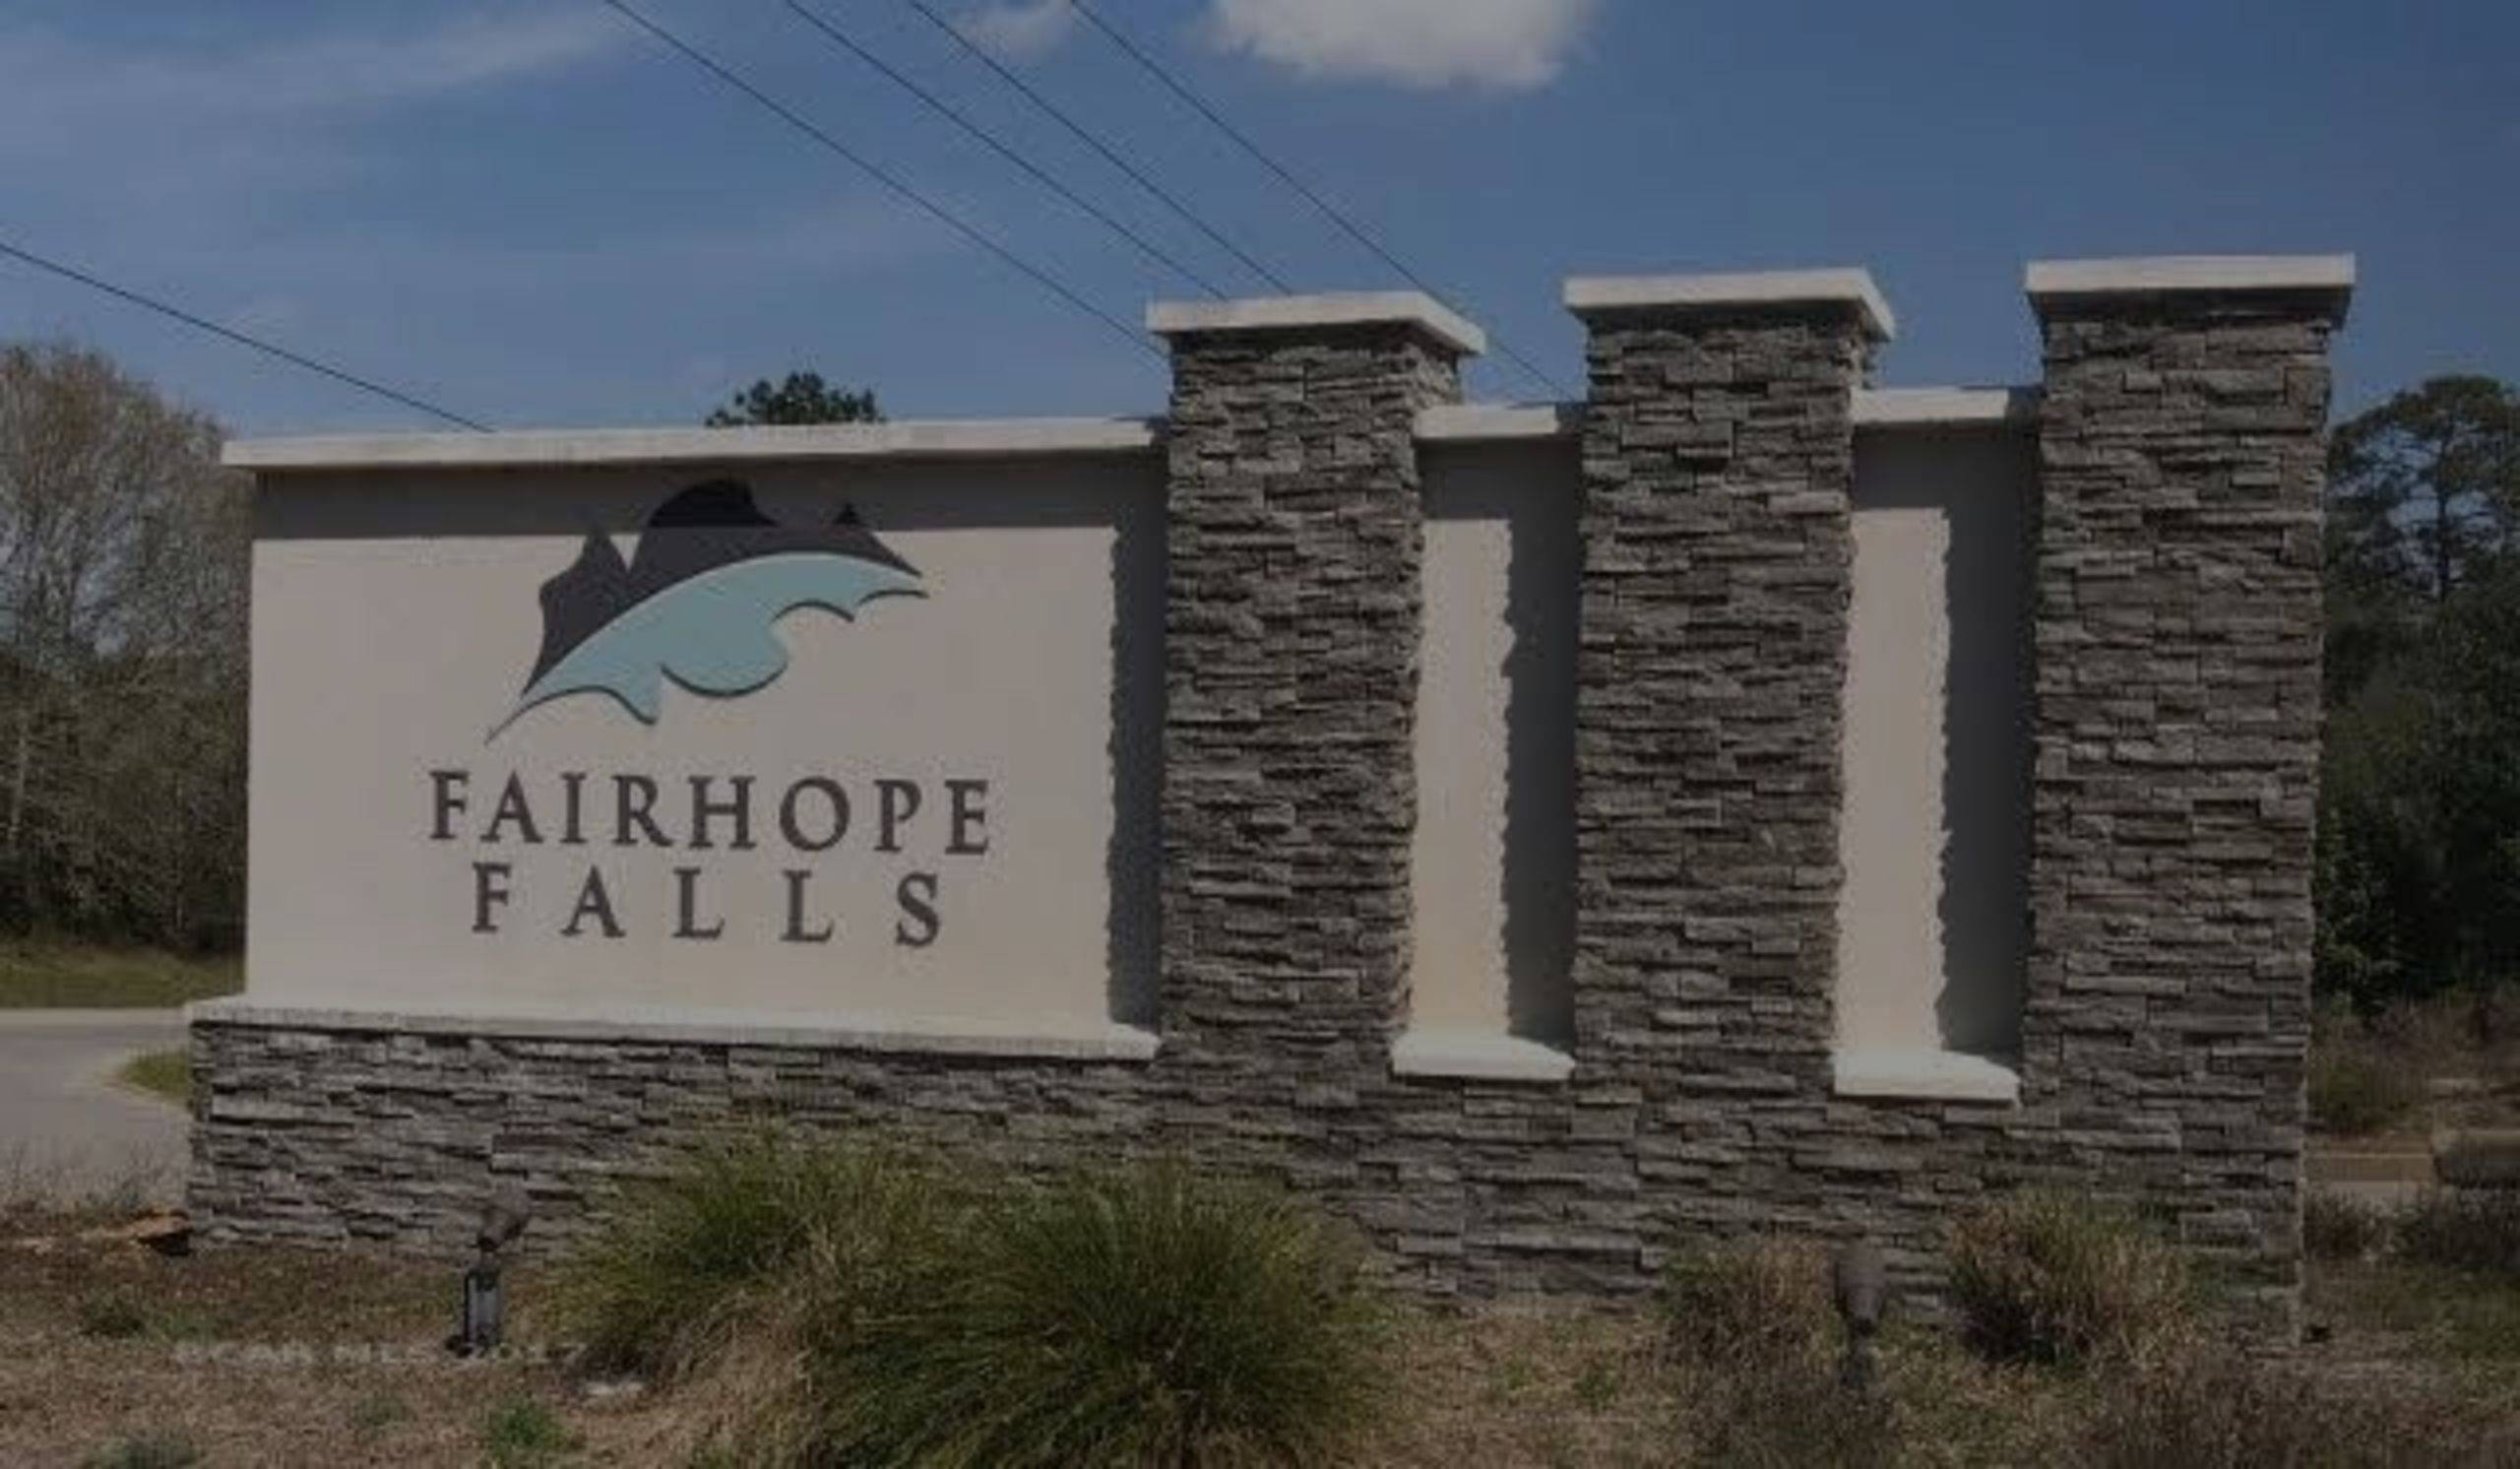 New Construction in Fairhope Falls